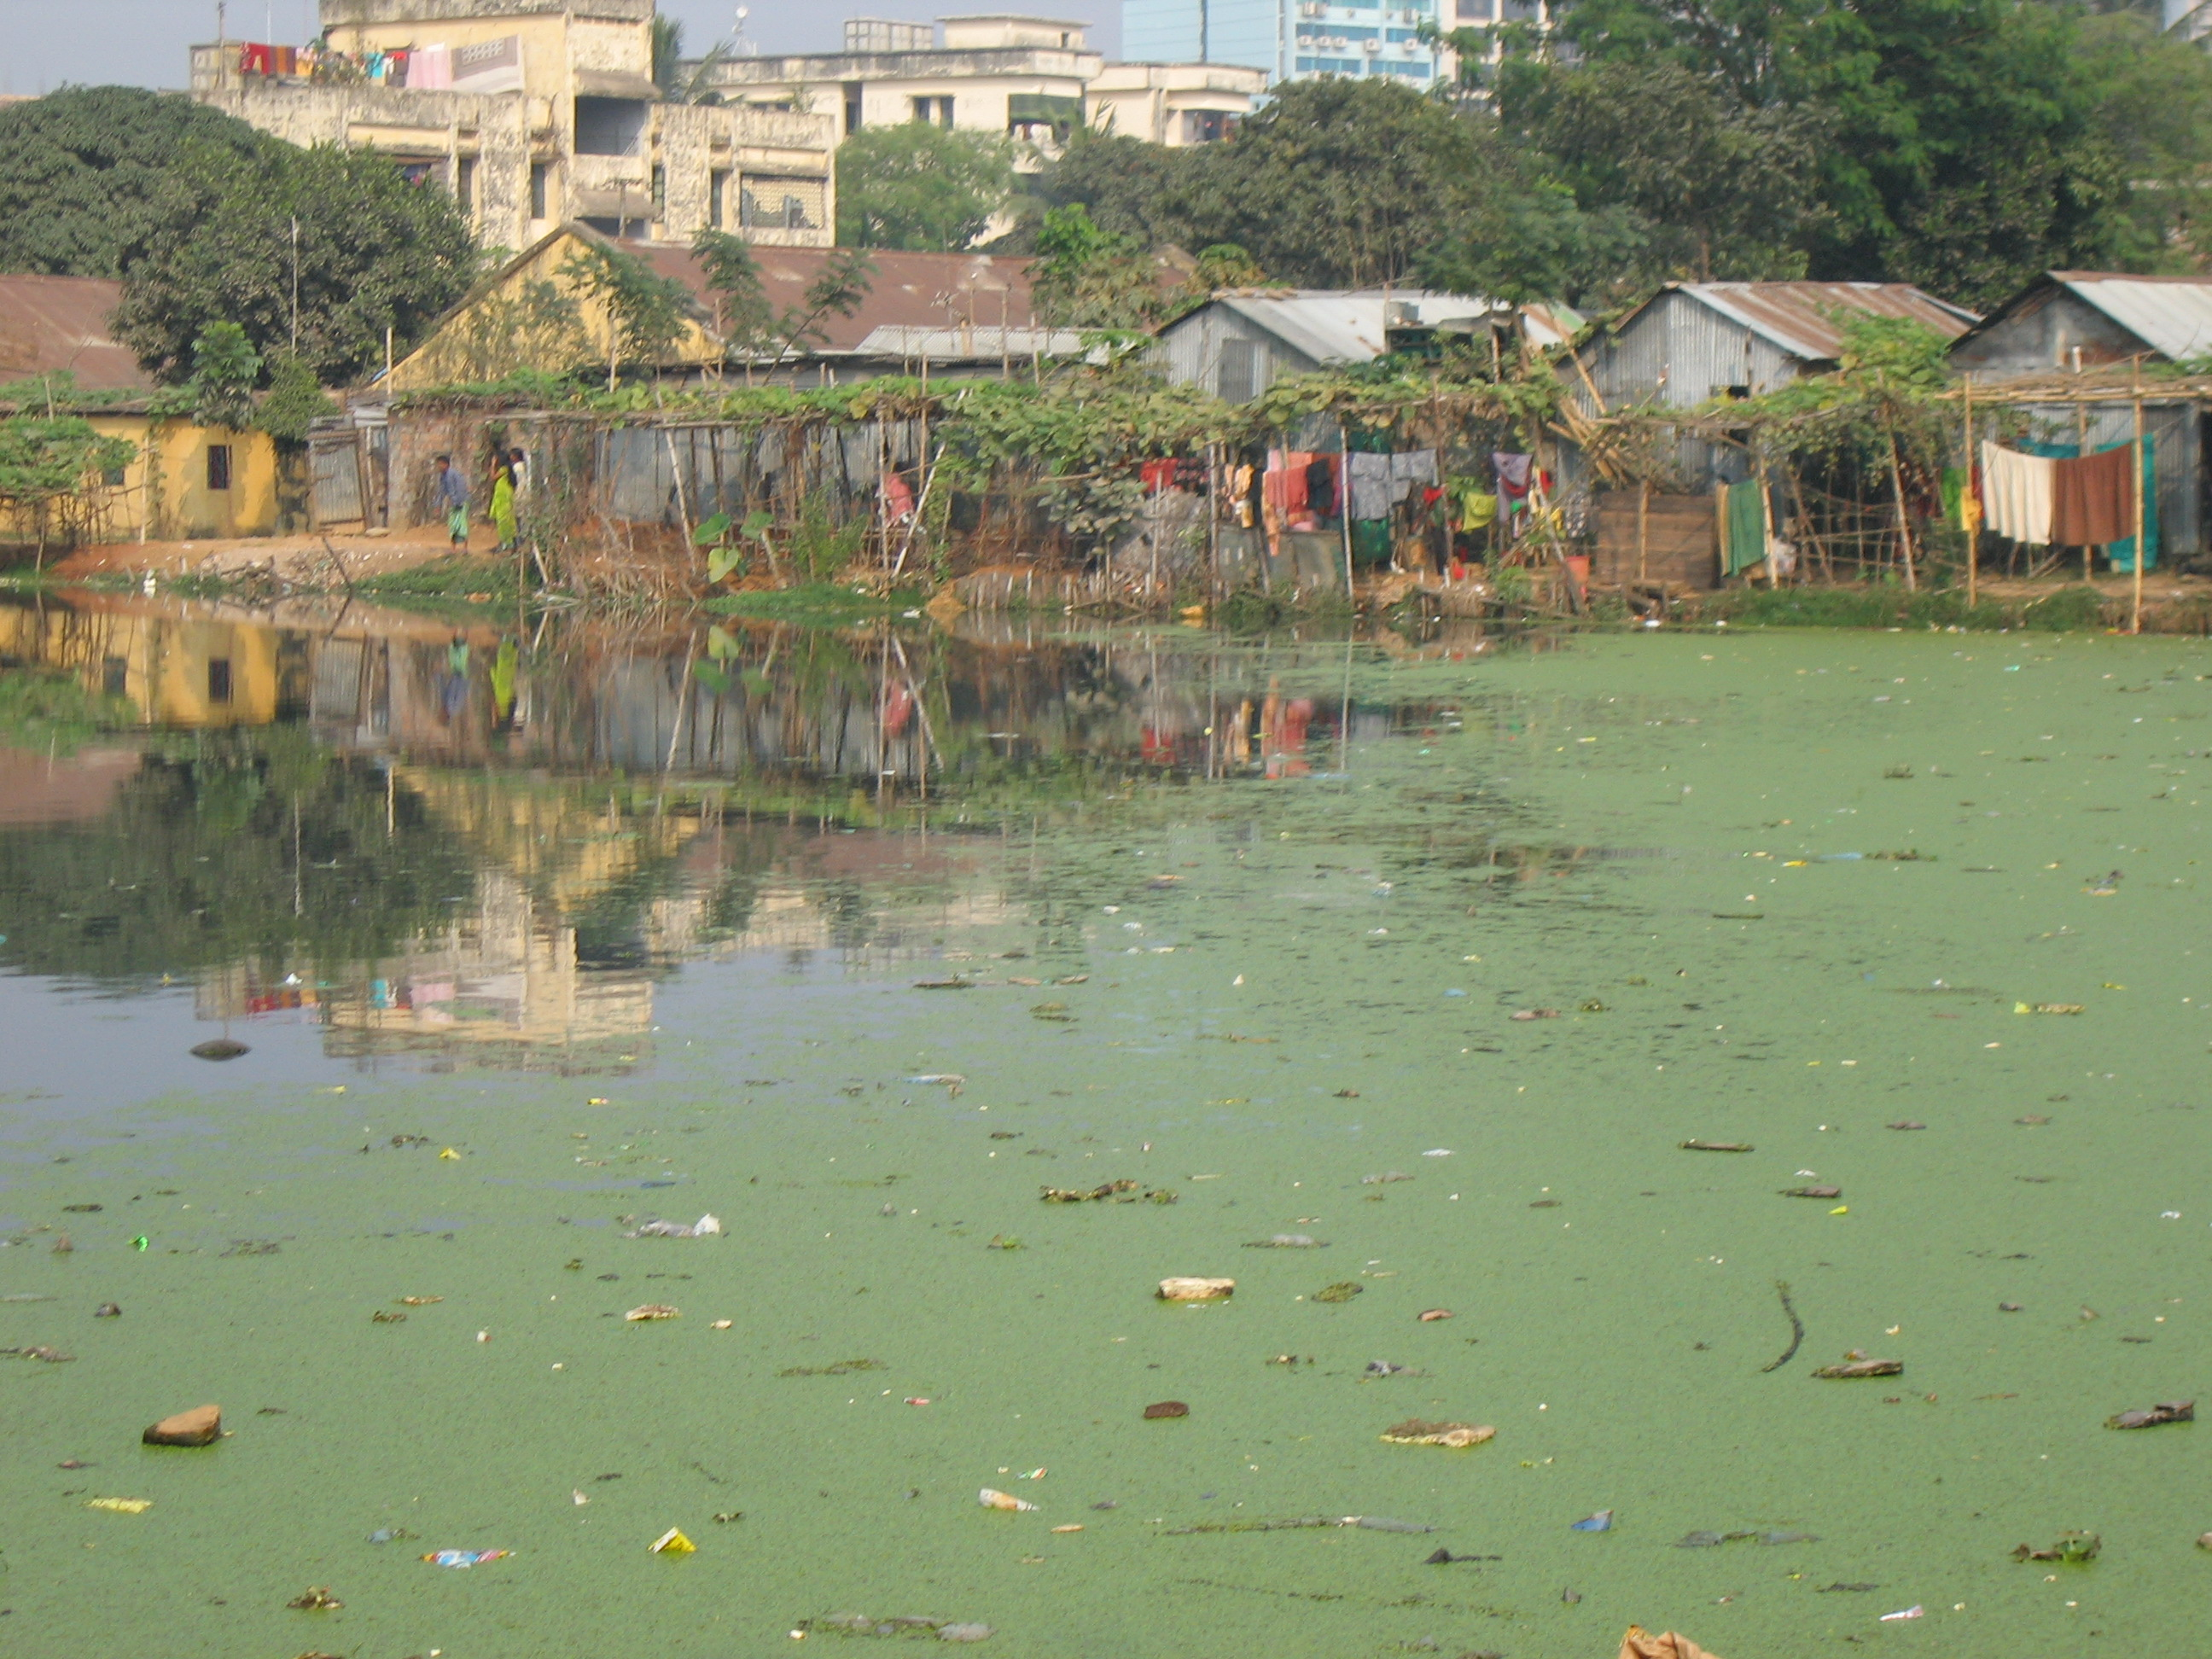 Life at the edge of a pond in one of the core districts of the city of  Dhaka. The photograph illustrates some of the variation in living  conditions and the problems with sanitary conditions that are greatly  exacerbated later in the year with the floods of the monsoon season. Photo by Mercedes Pascual